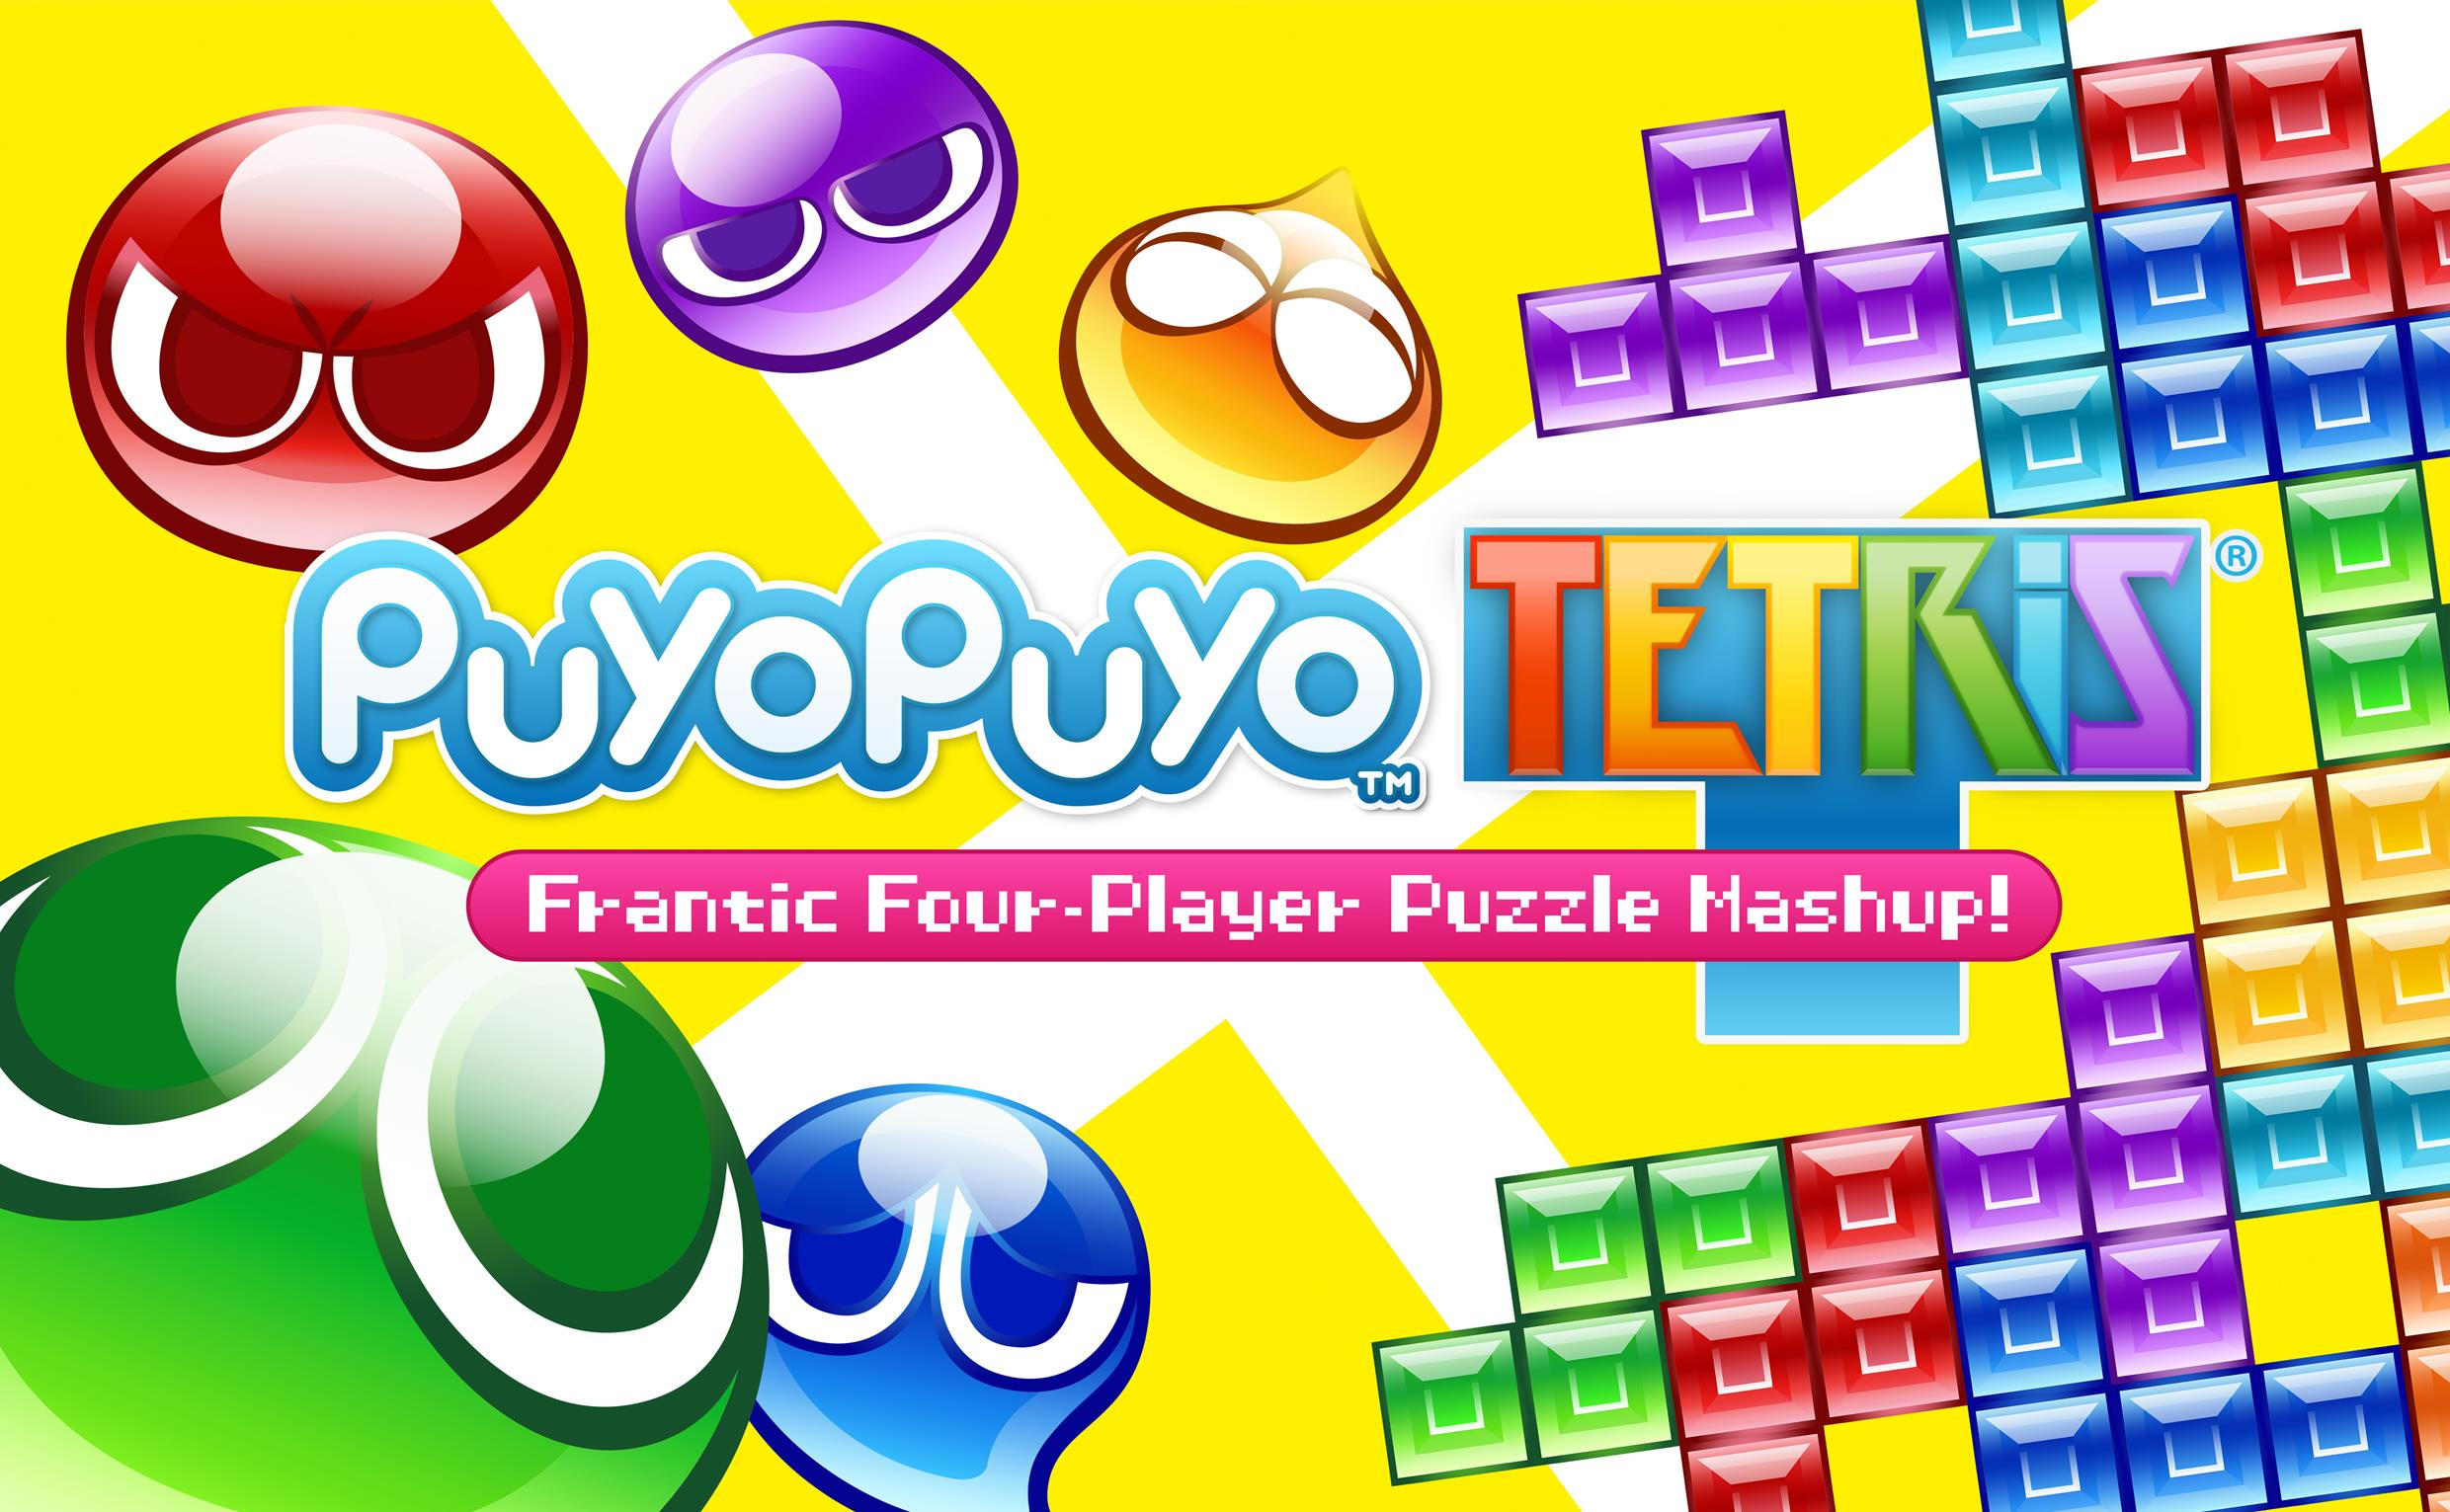 Dc5n United States Software In English Created At 2018 02 07 0236 Bundle 2 Pcs Steam Wallet Idr 400000 After A Not So Subtle Teaser Last Night Sega Has Officially Announced Puyo Tetris For Pc Will Be Released On February 27 Through